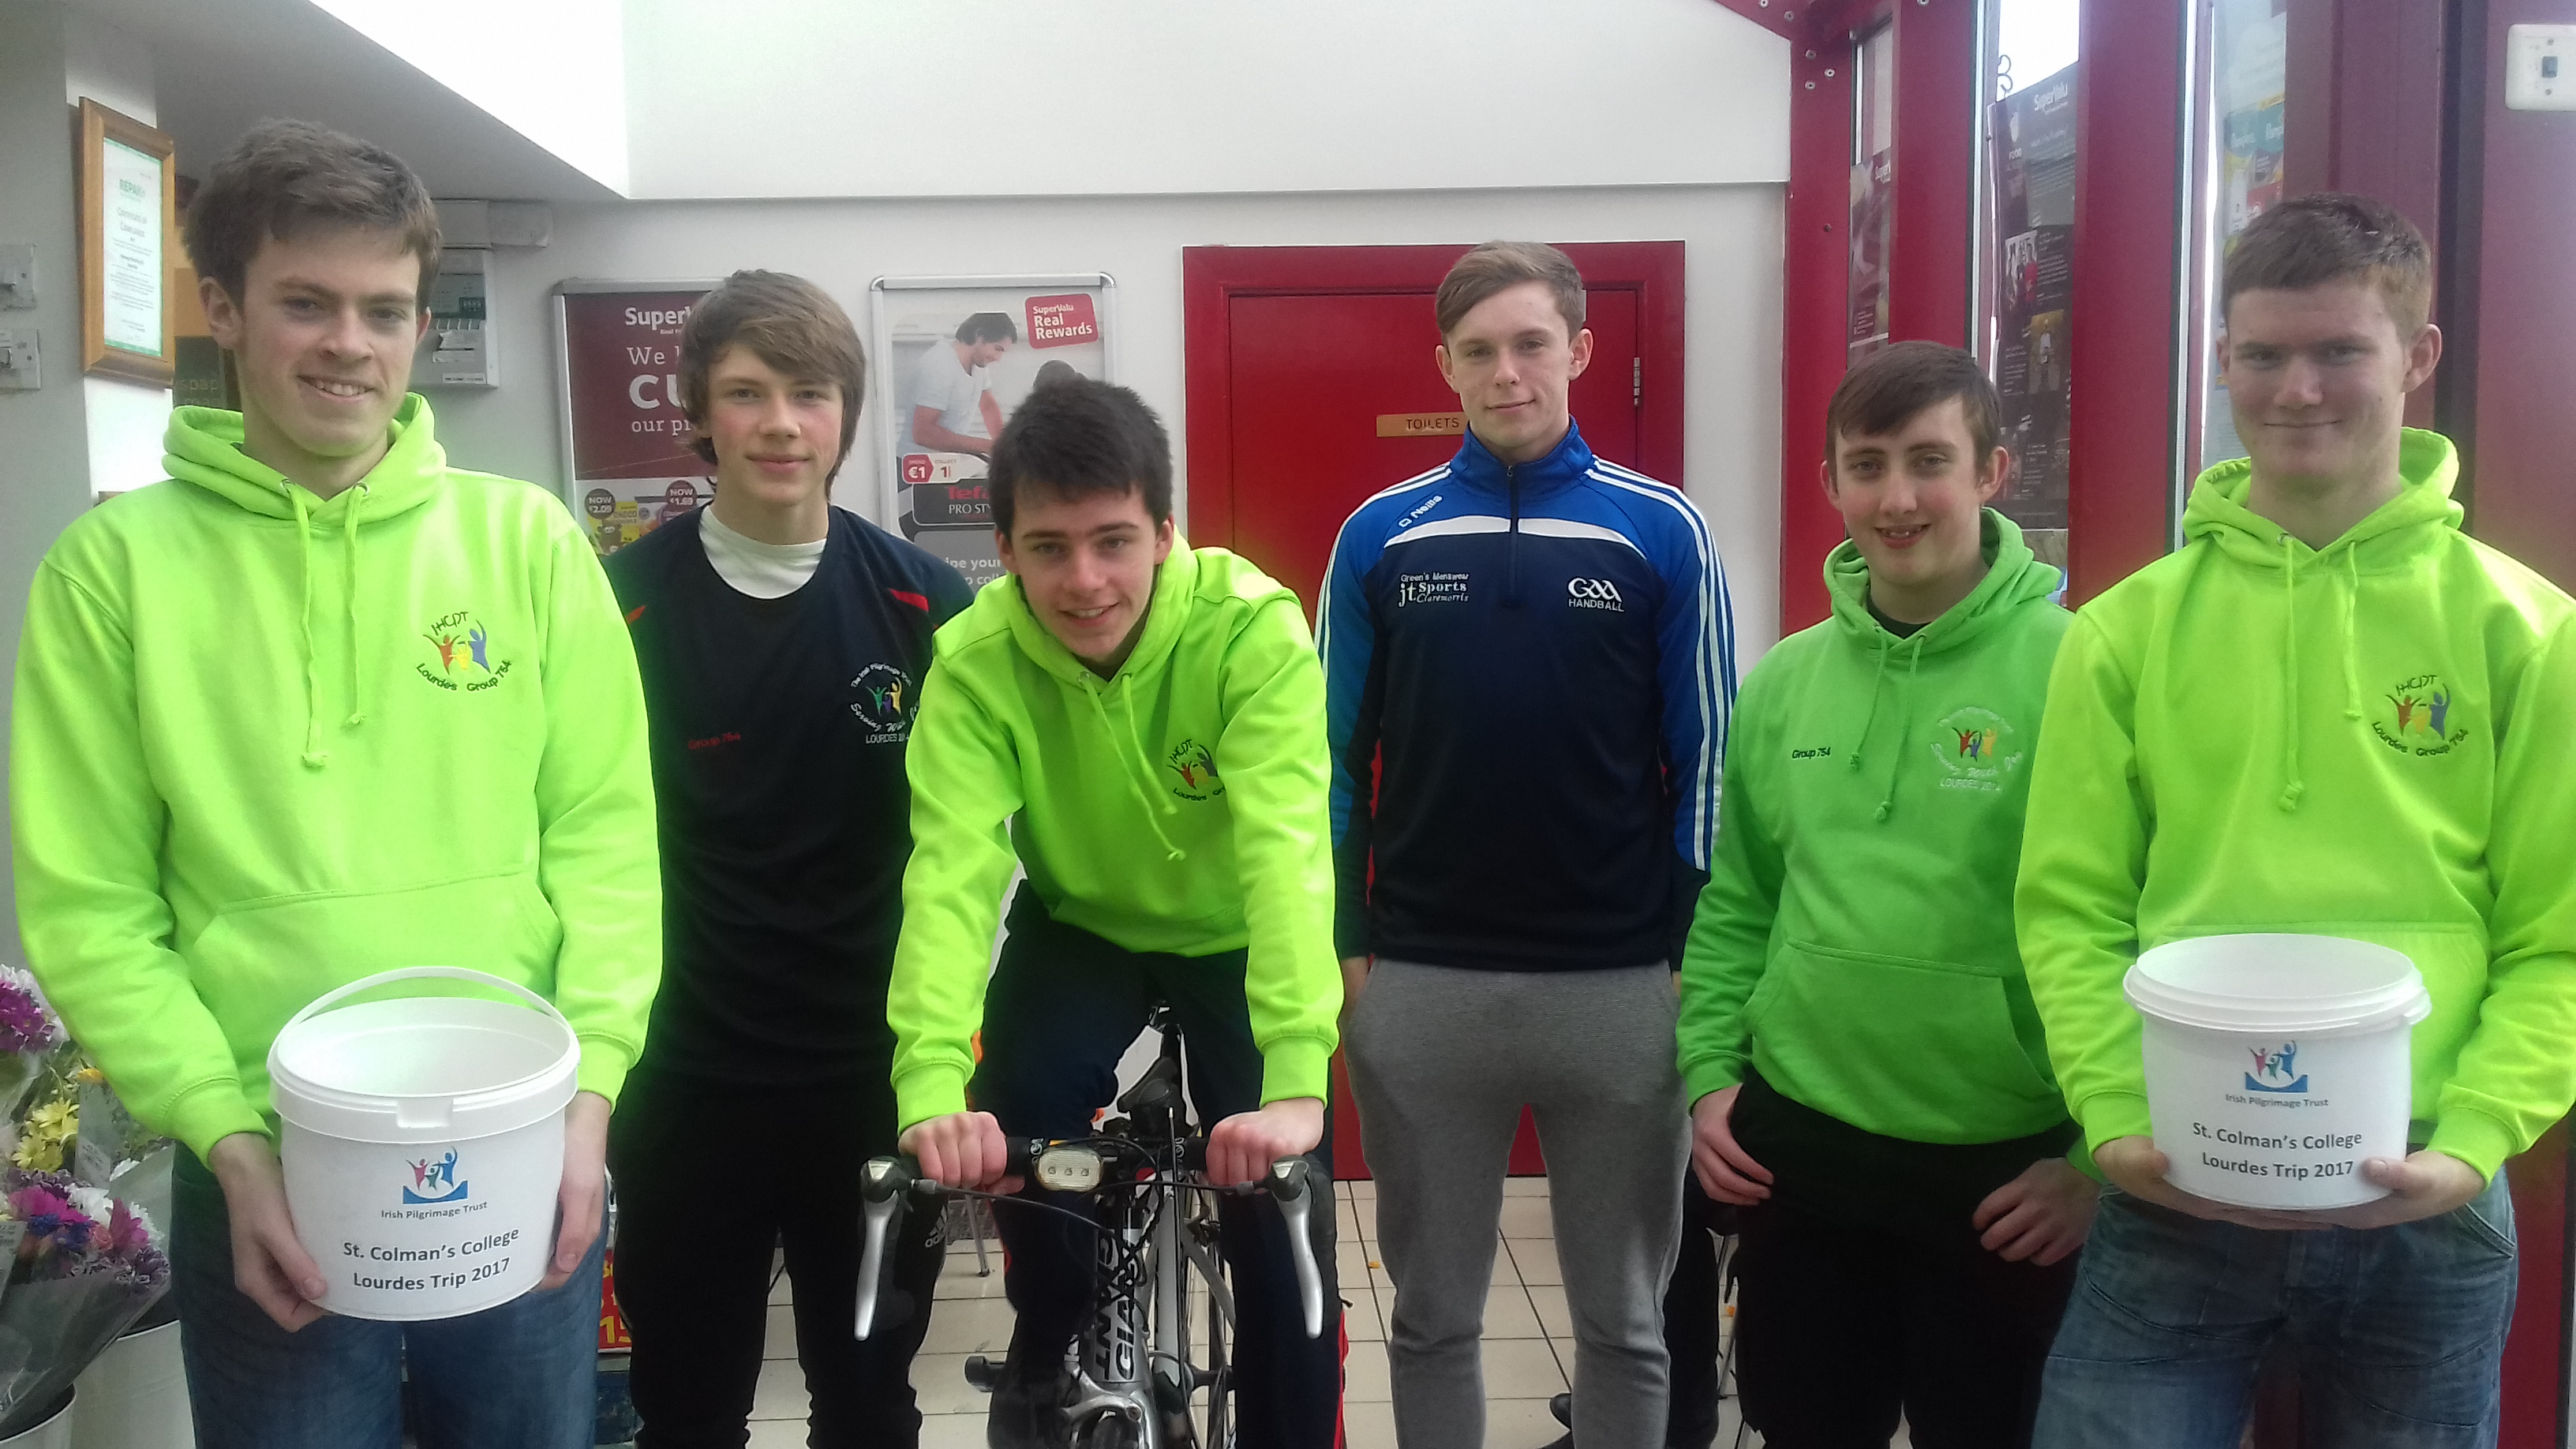 5th Year students from St.Colman's College getting ready for Lourdes.